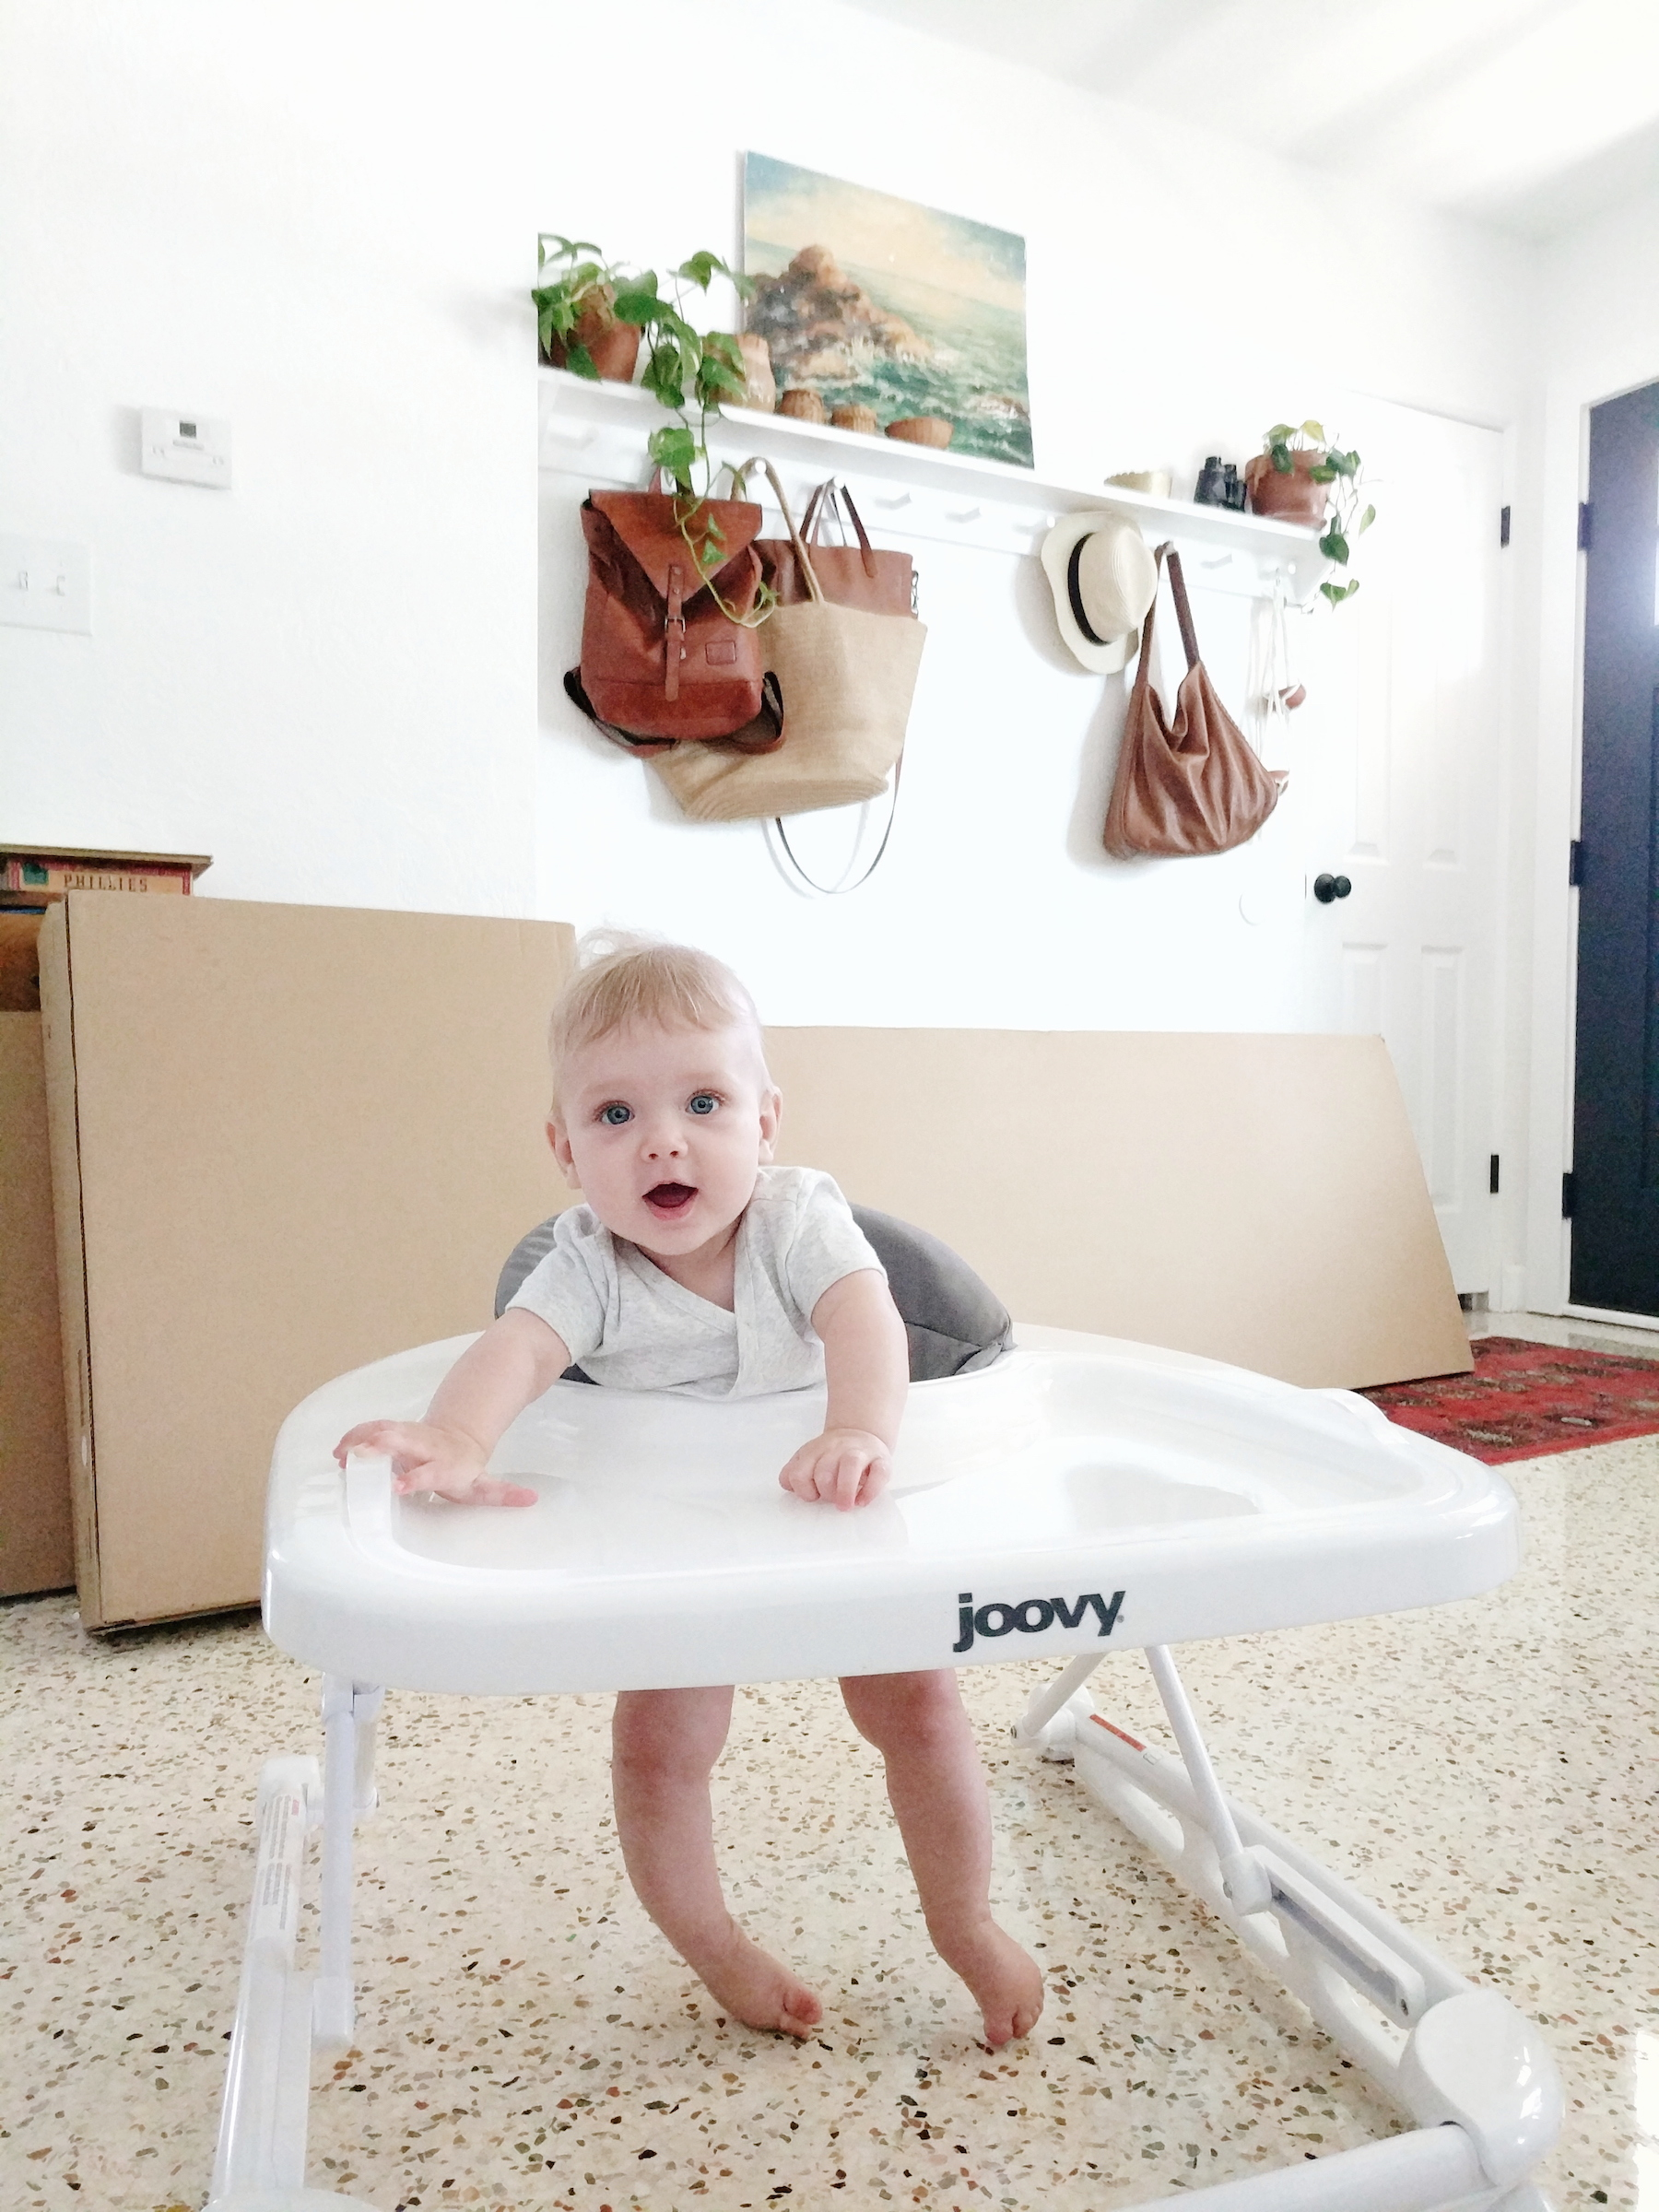 Six month old Joovy Walker